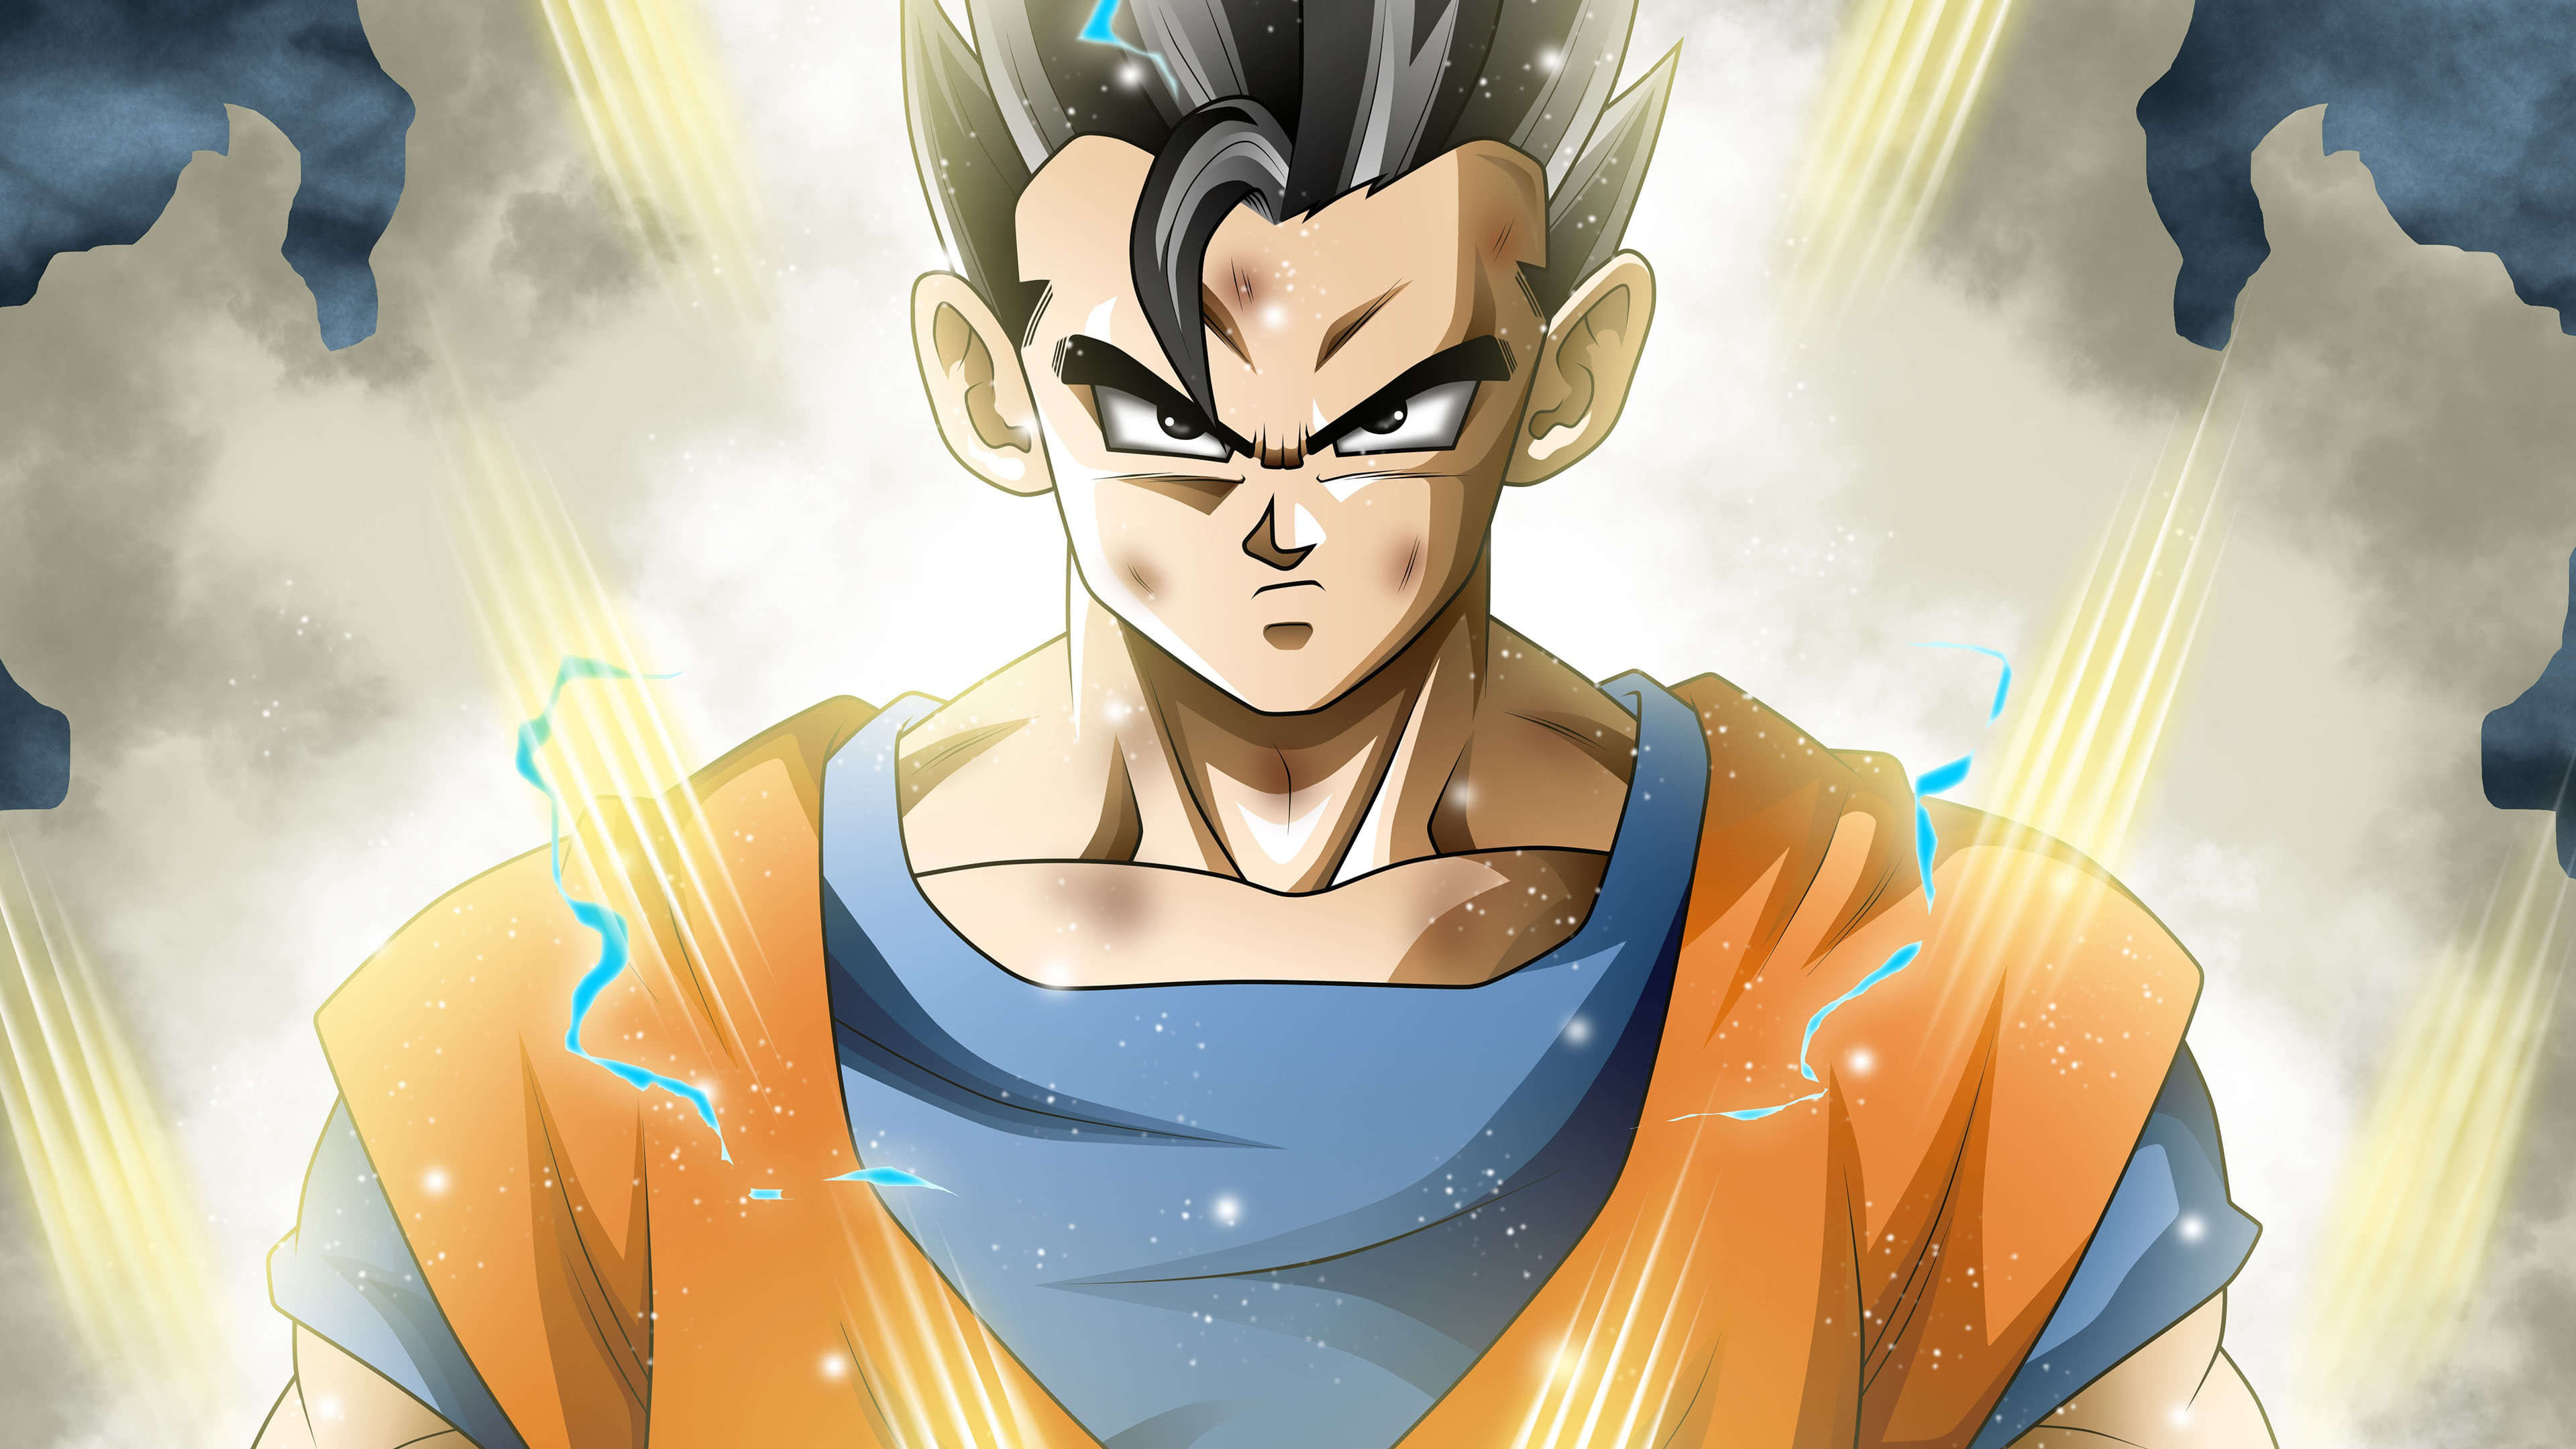 Dragon Ball Super Mystic Gohan Portrait Uhd 4k Wallpaper Pixelz